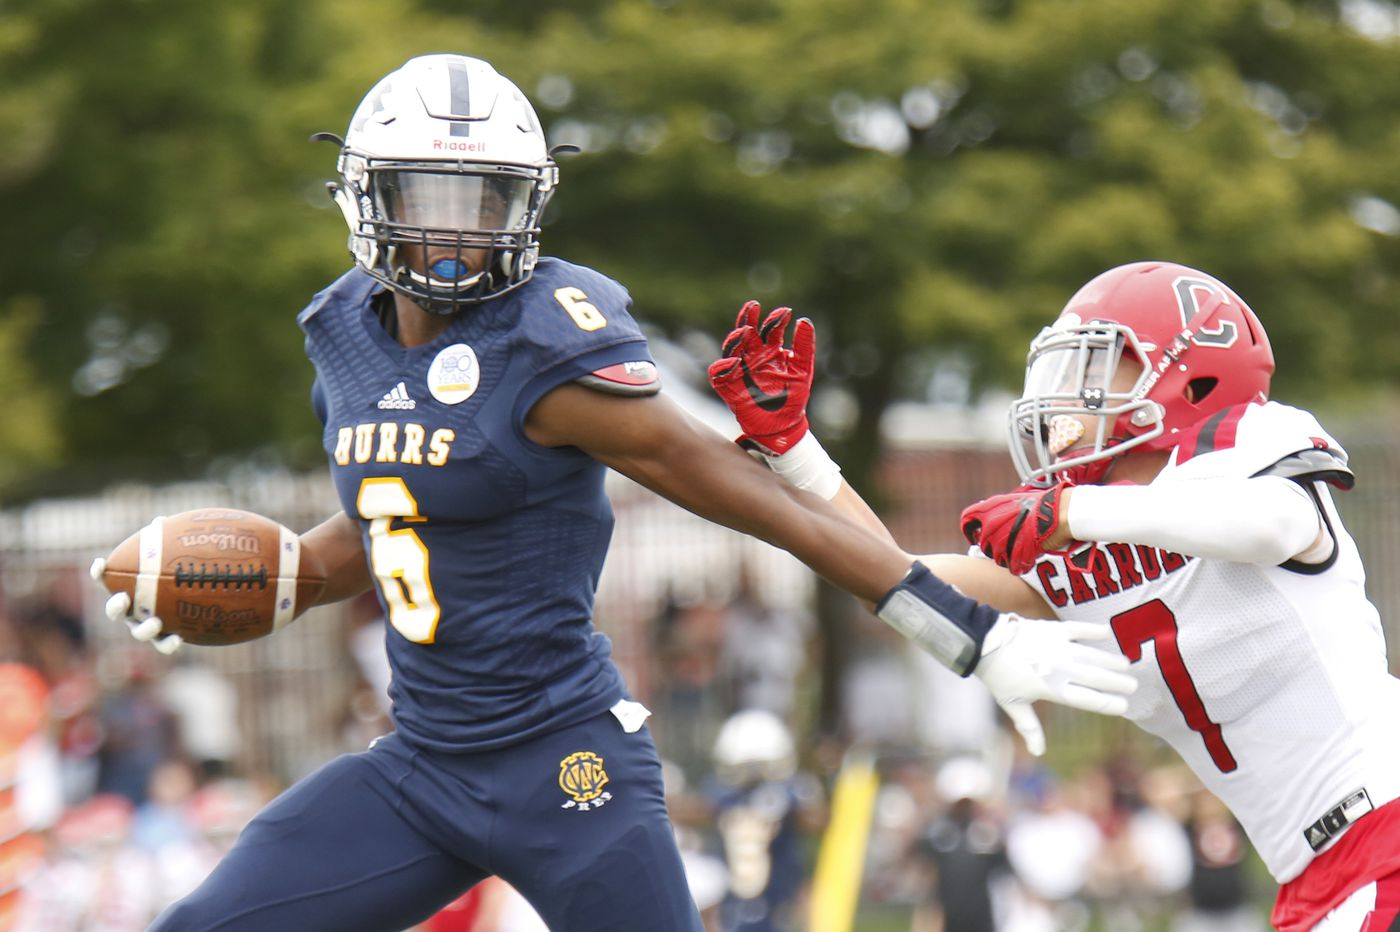 Video: Tre Johnson led West Catholic to second round of PIAA Class 2A playoffs